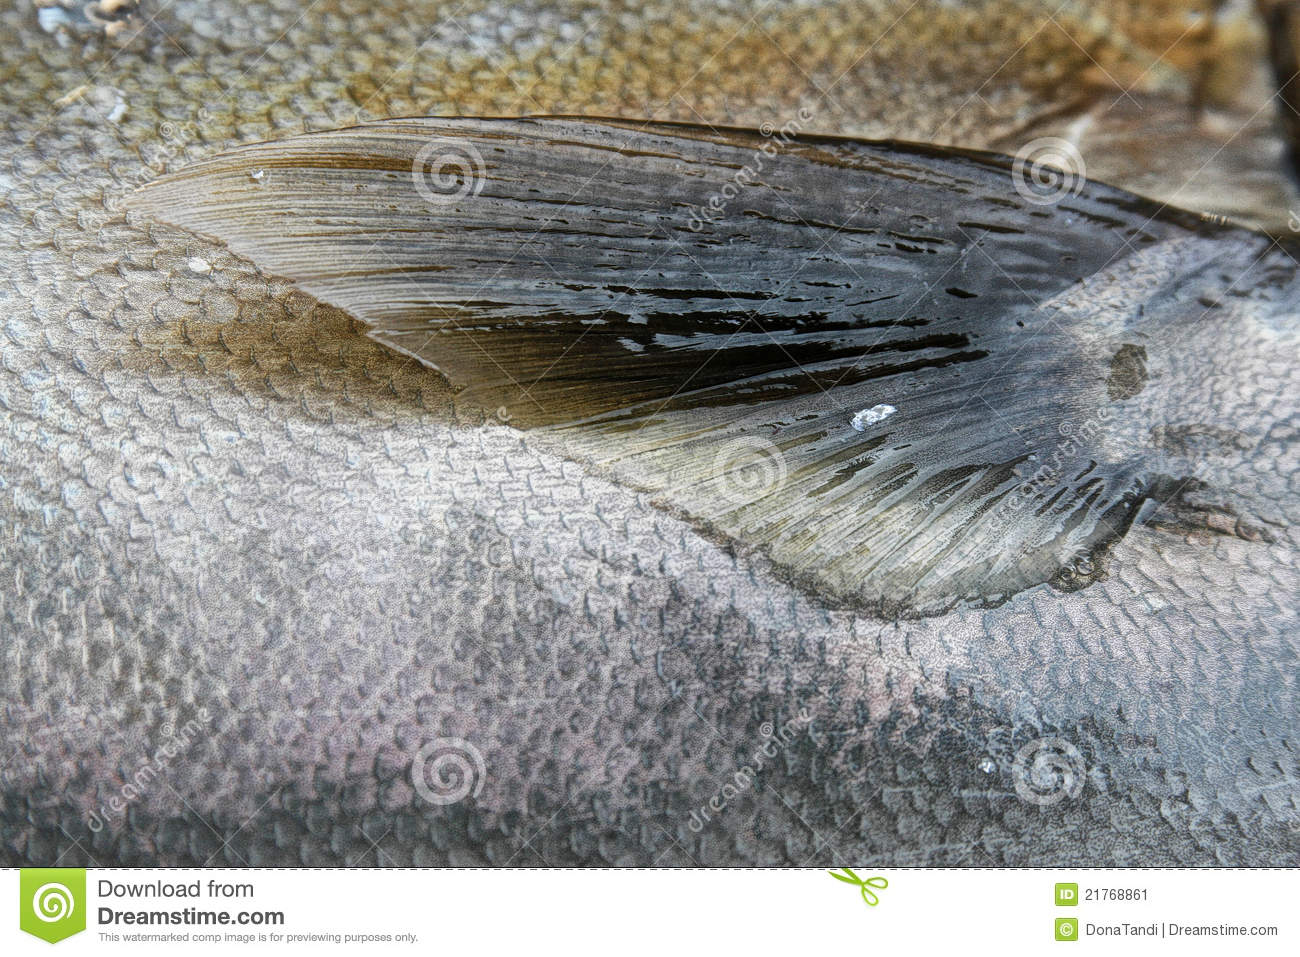 Fish scales and fin stock image image 21768861 for List of fish with fins and scales